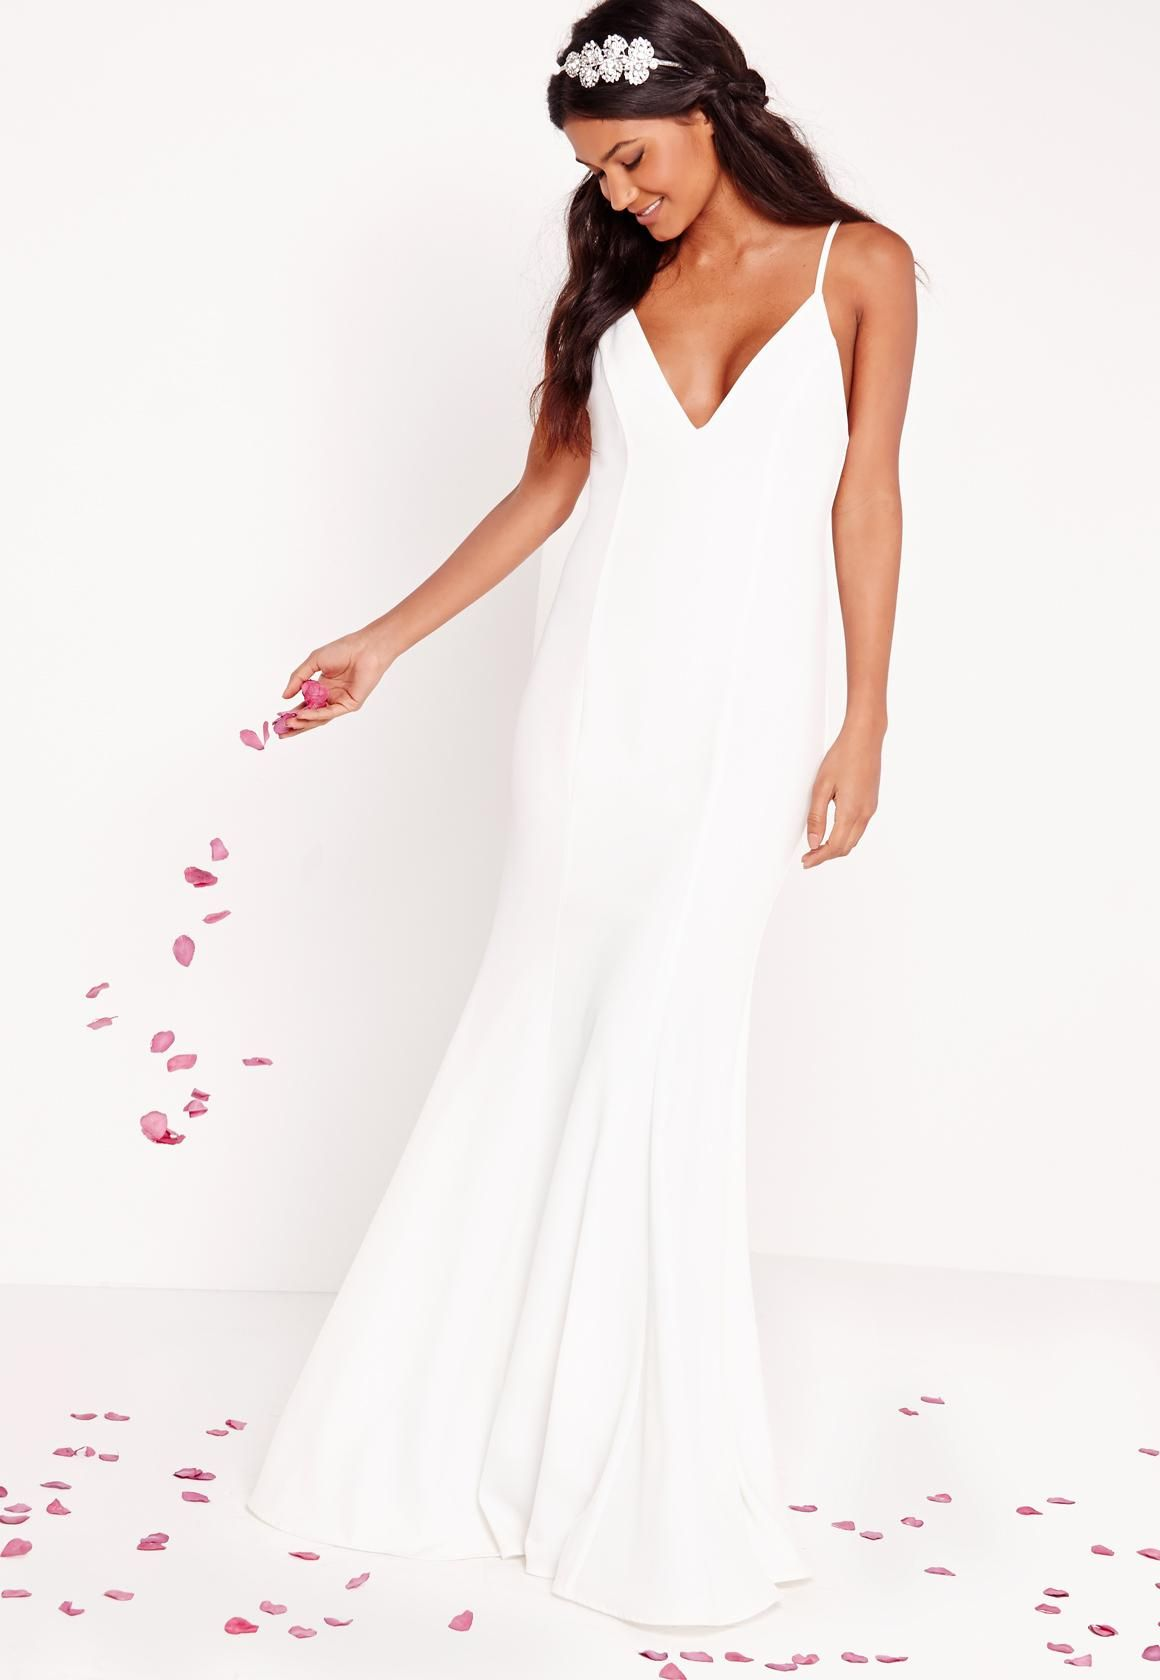 50+ Wedding Maxi Dresses - Dressy Dresses for Weddings Check more at ...